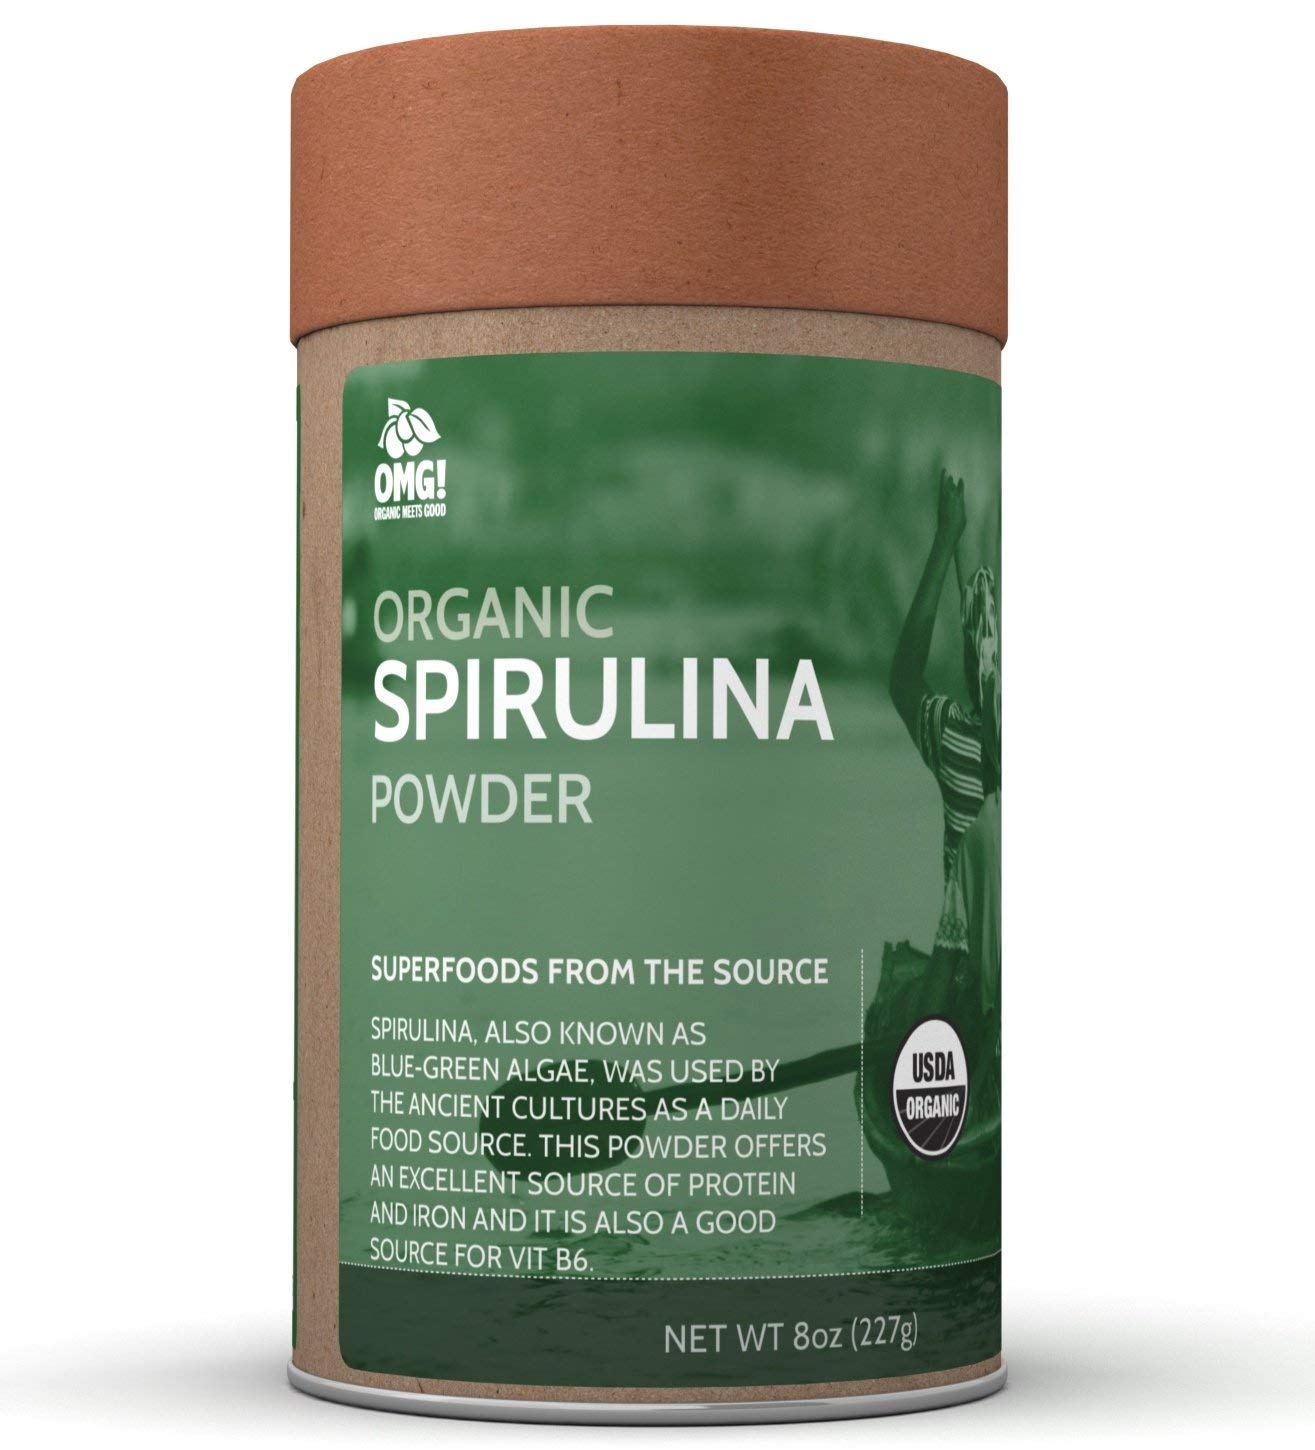 OMG! Superfoods Organic Spirulina Powder – 100% Pure, USDA Certified Organic Spirulina Powder – 8oz